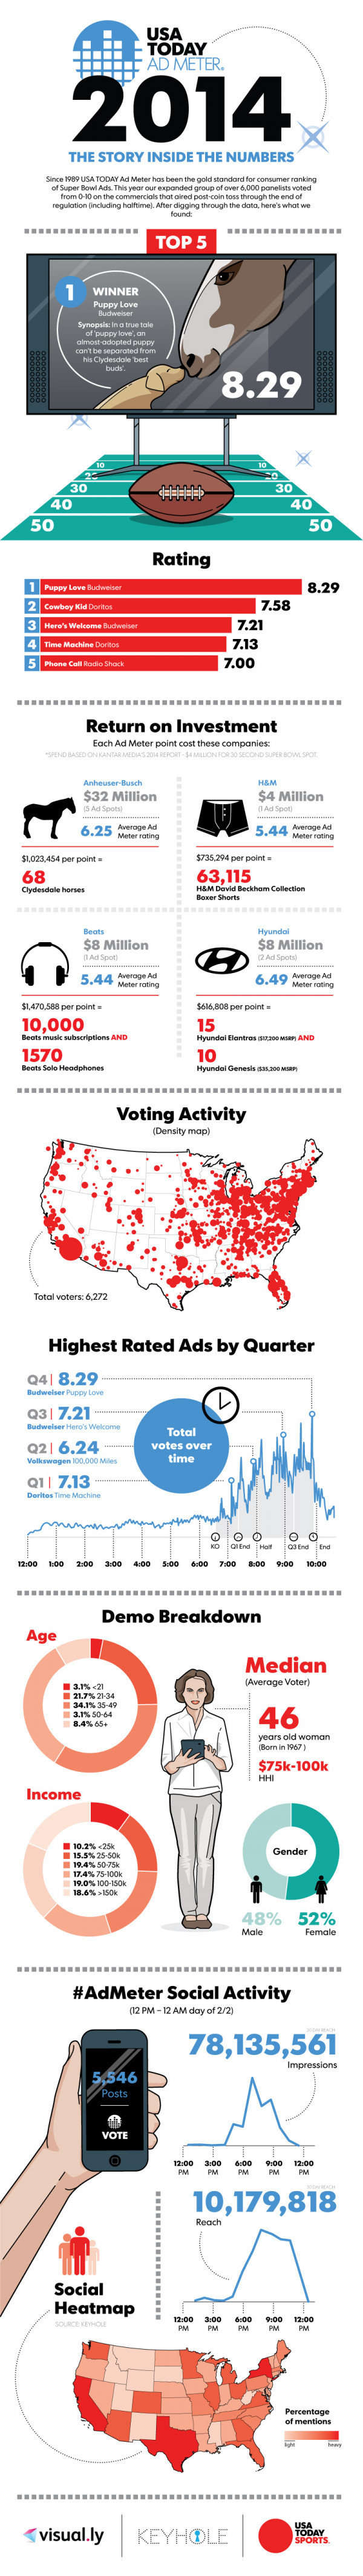 USA Today Ad Meter 2014 - The Story Inside the Numbers